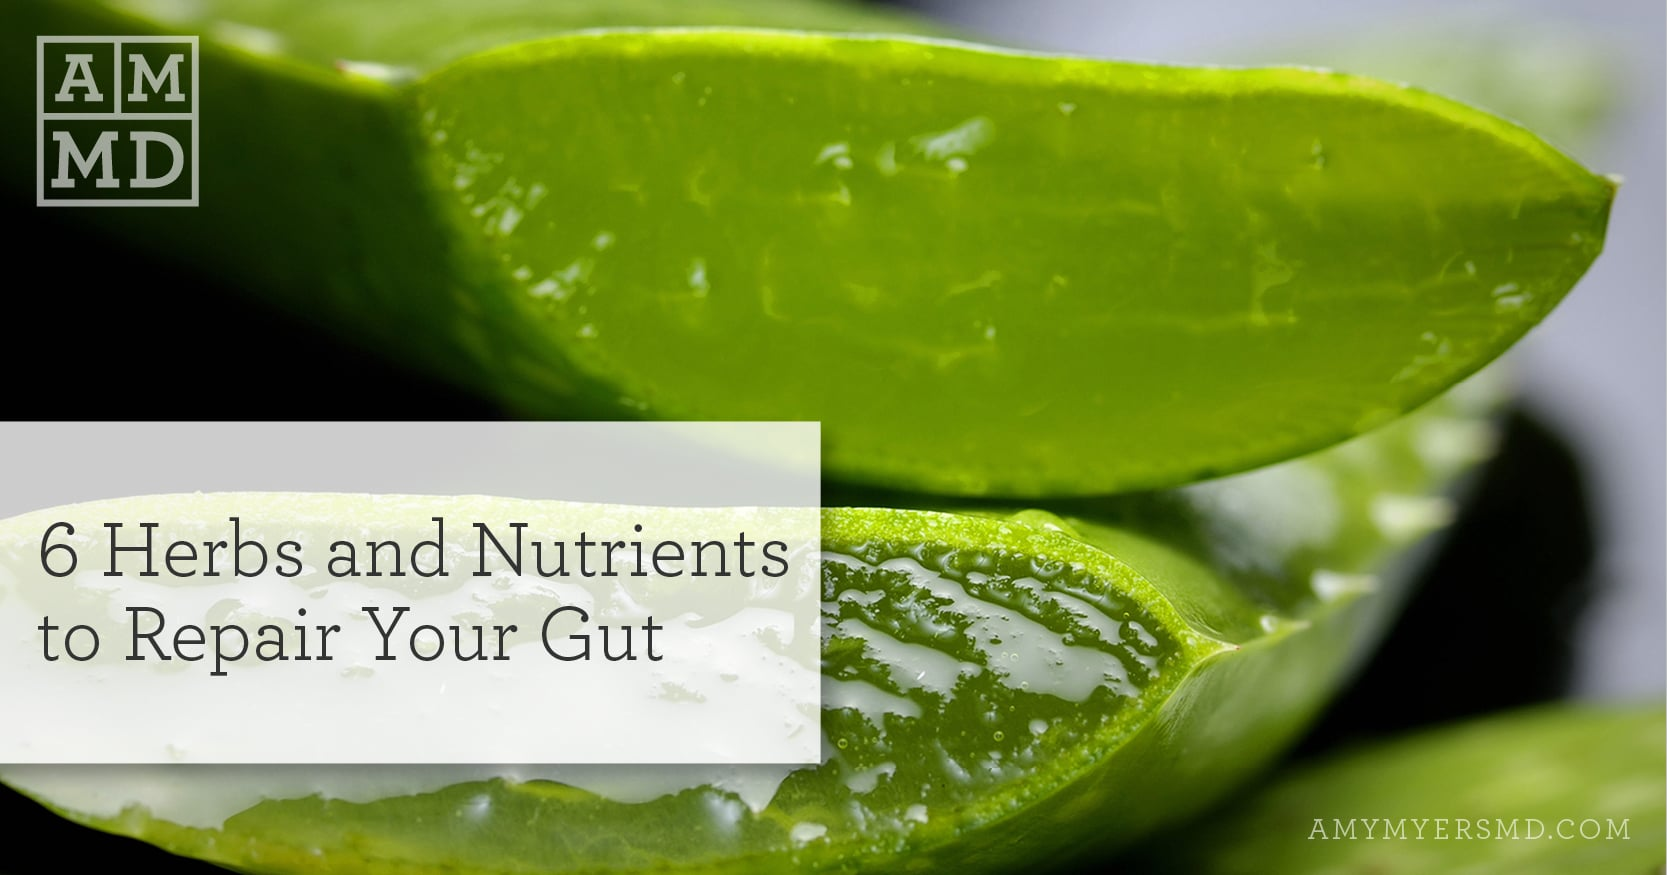 Repair Your Gut with 6 Herbs and Nutrients - Amy Myers MD